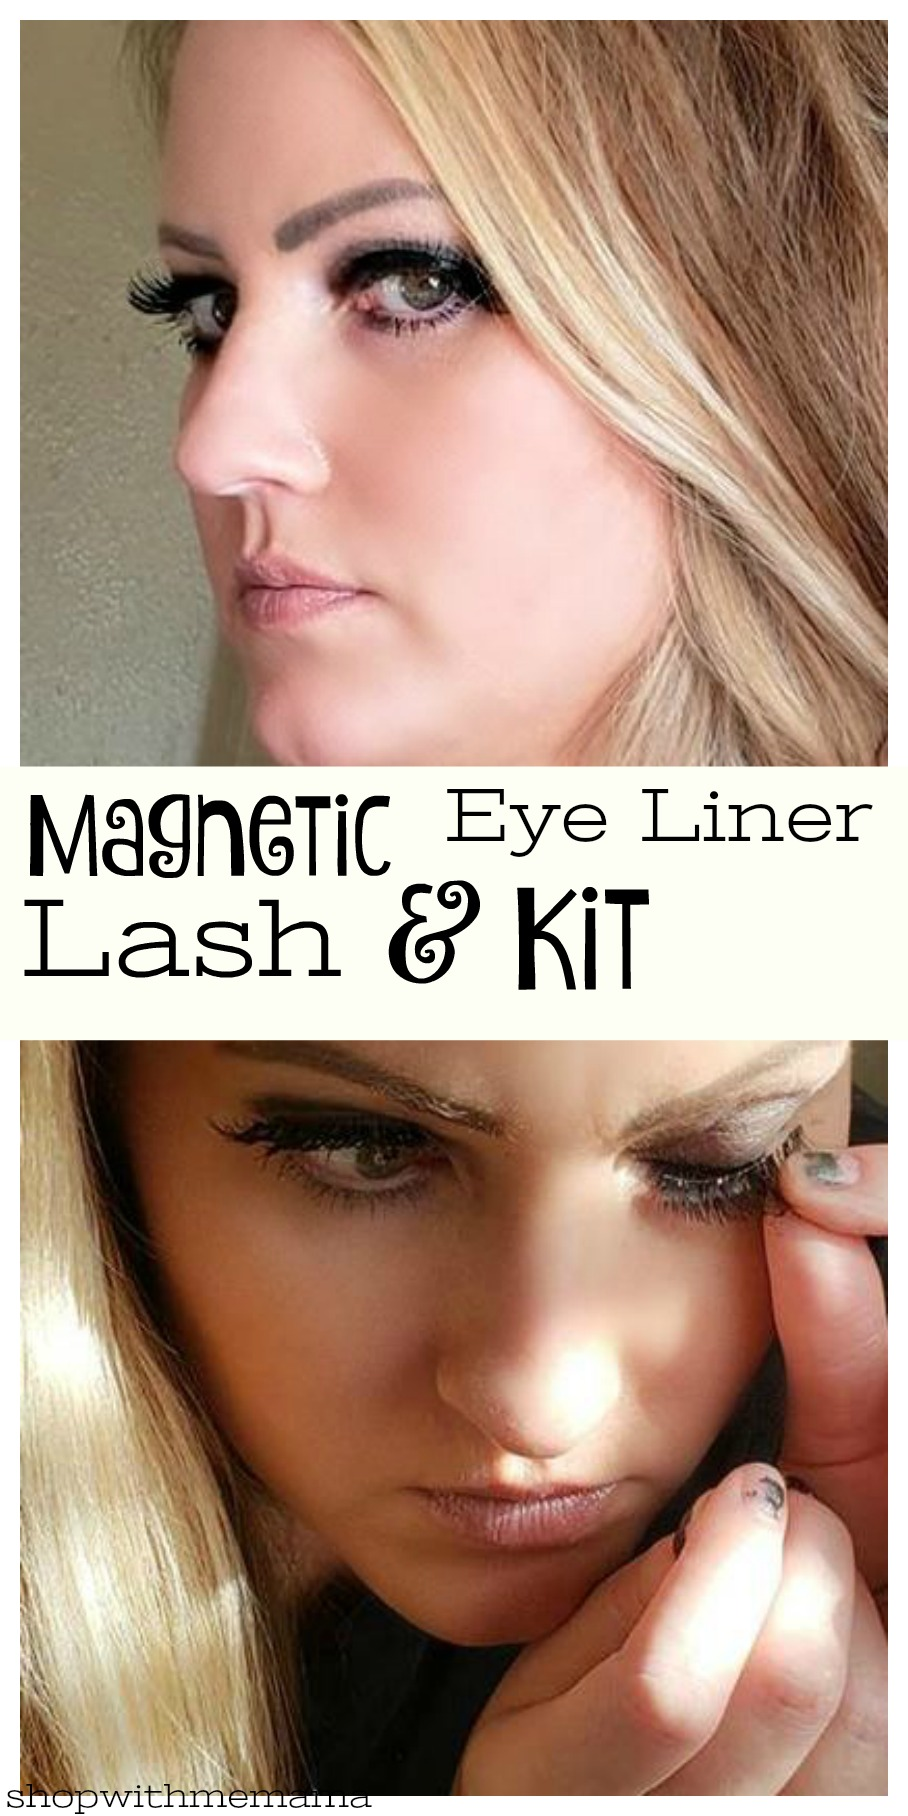 How do Magnetic eyelashes work